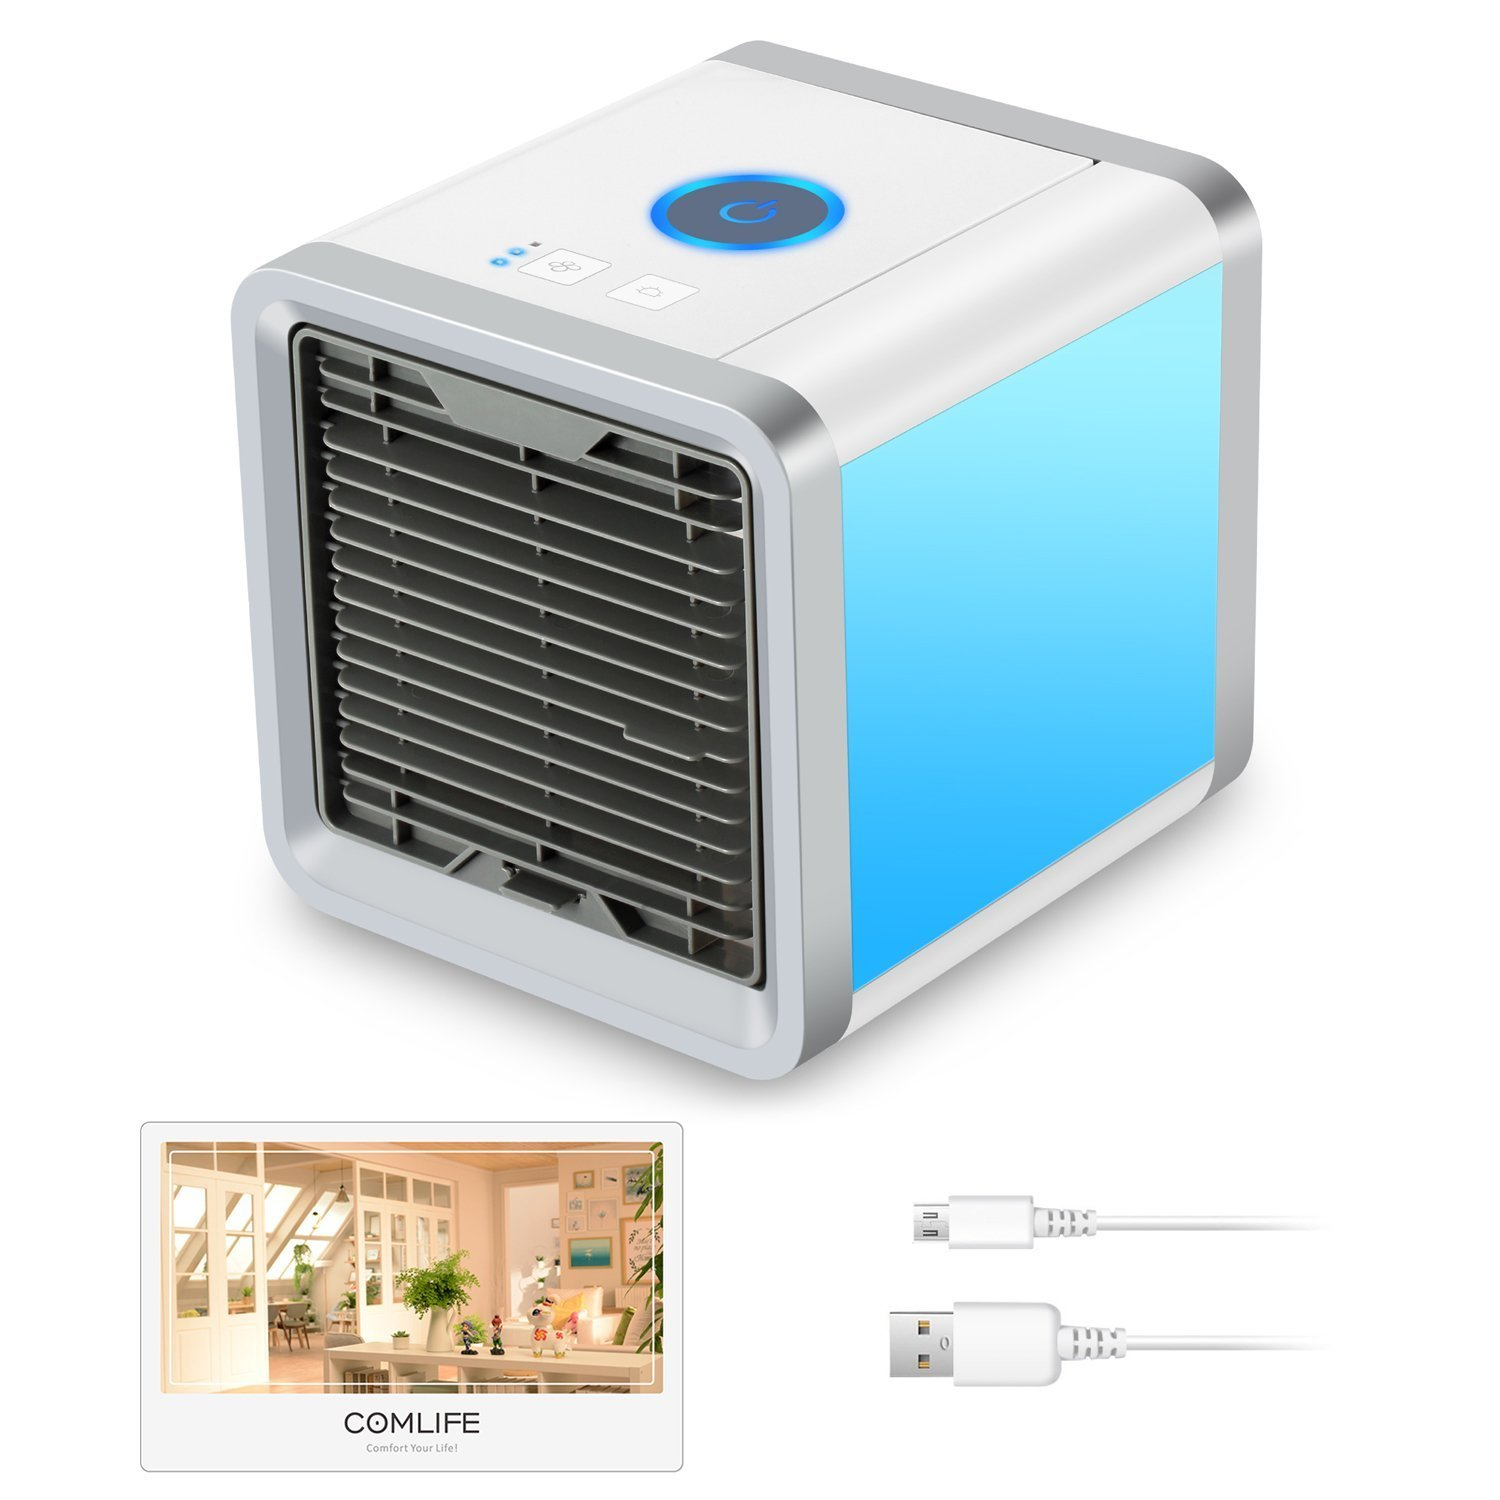 VICTOREM Space Portable Air Cooler Mini Air Conditioner USB Aircooler for Home Room